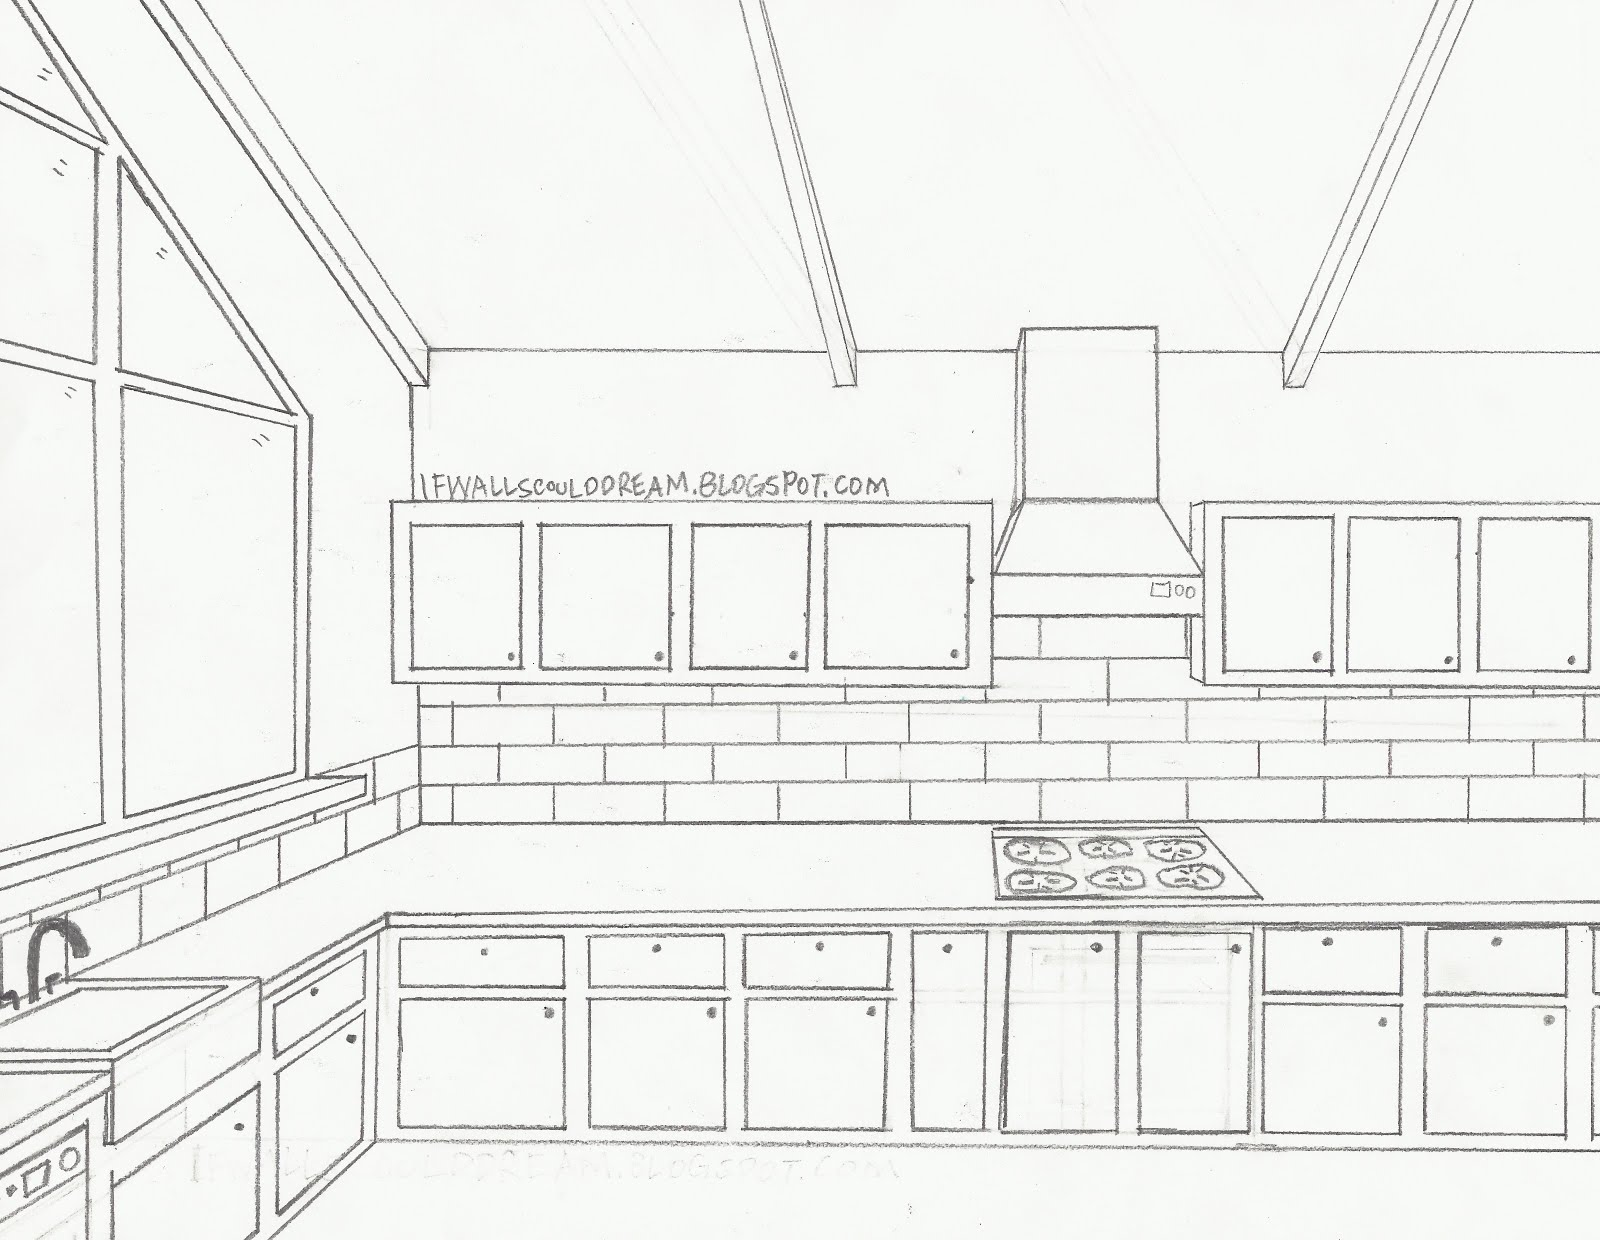 A sketch of a kitchen